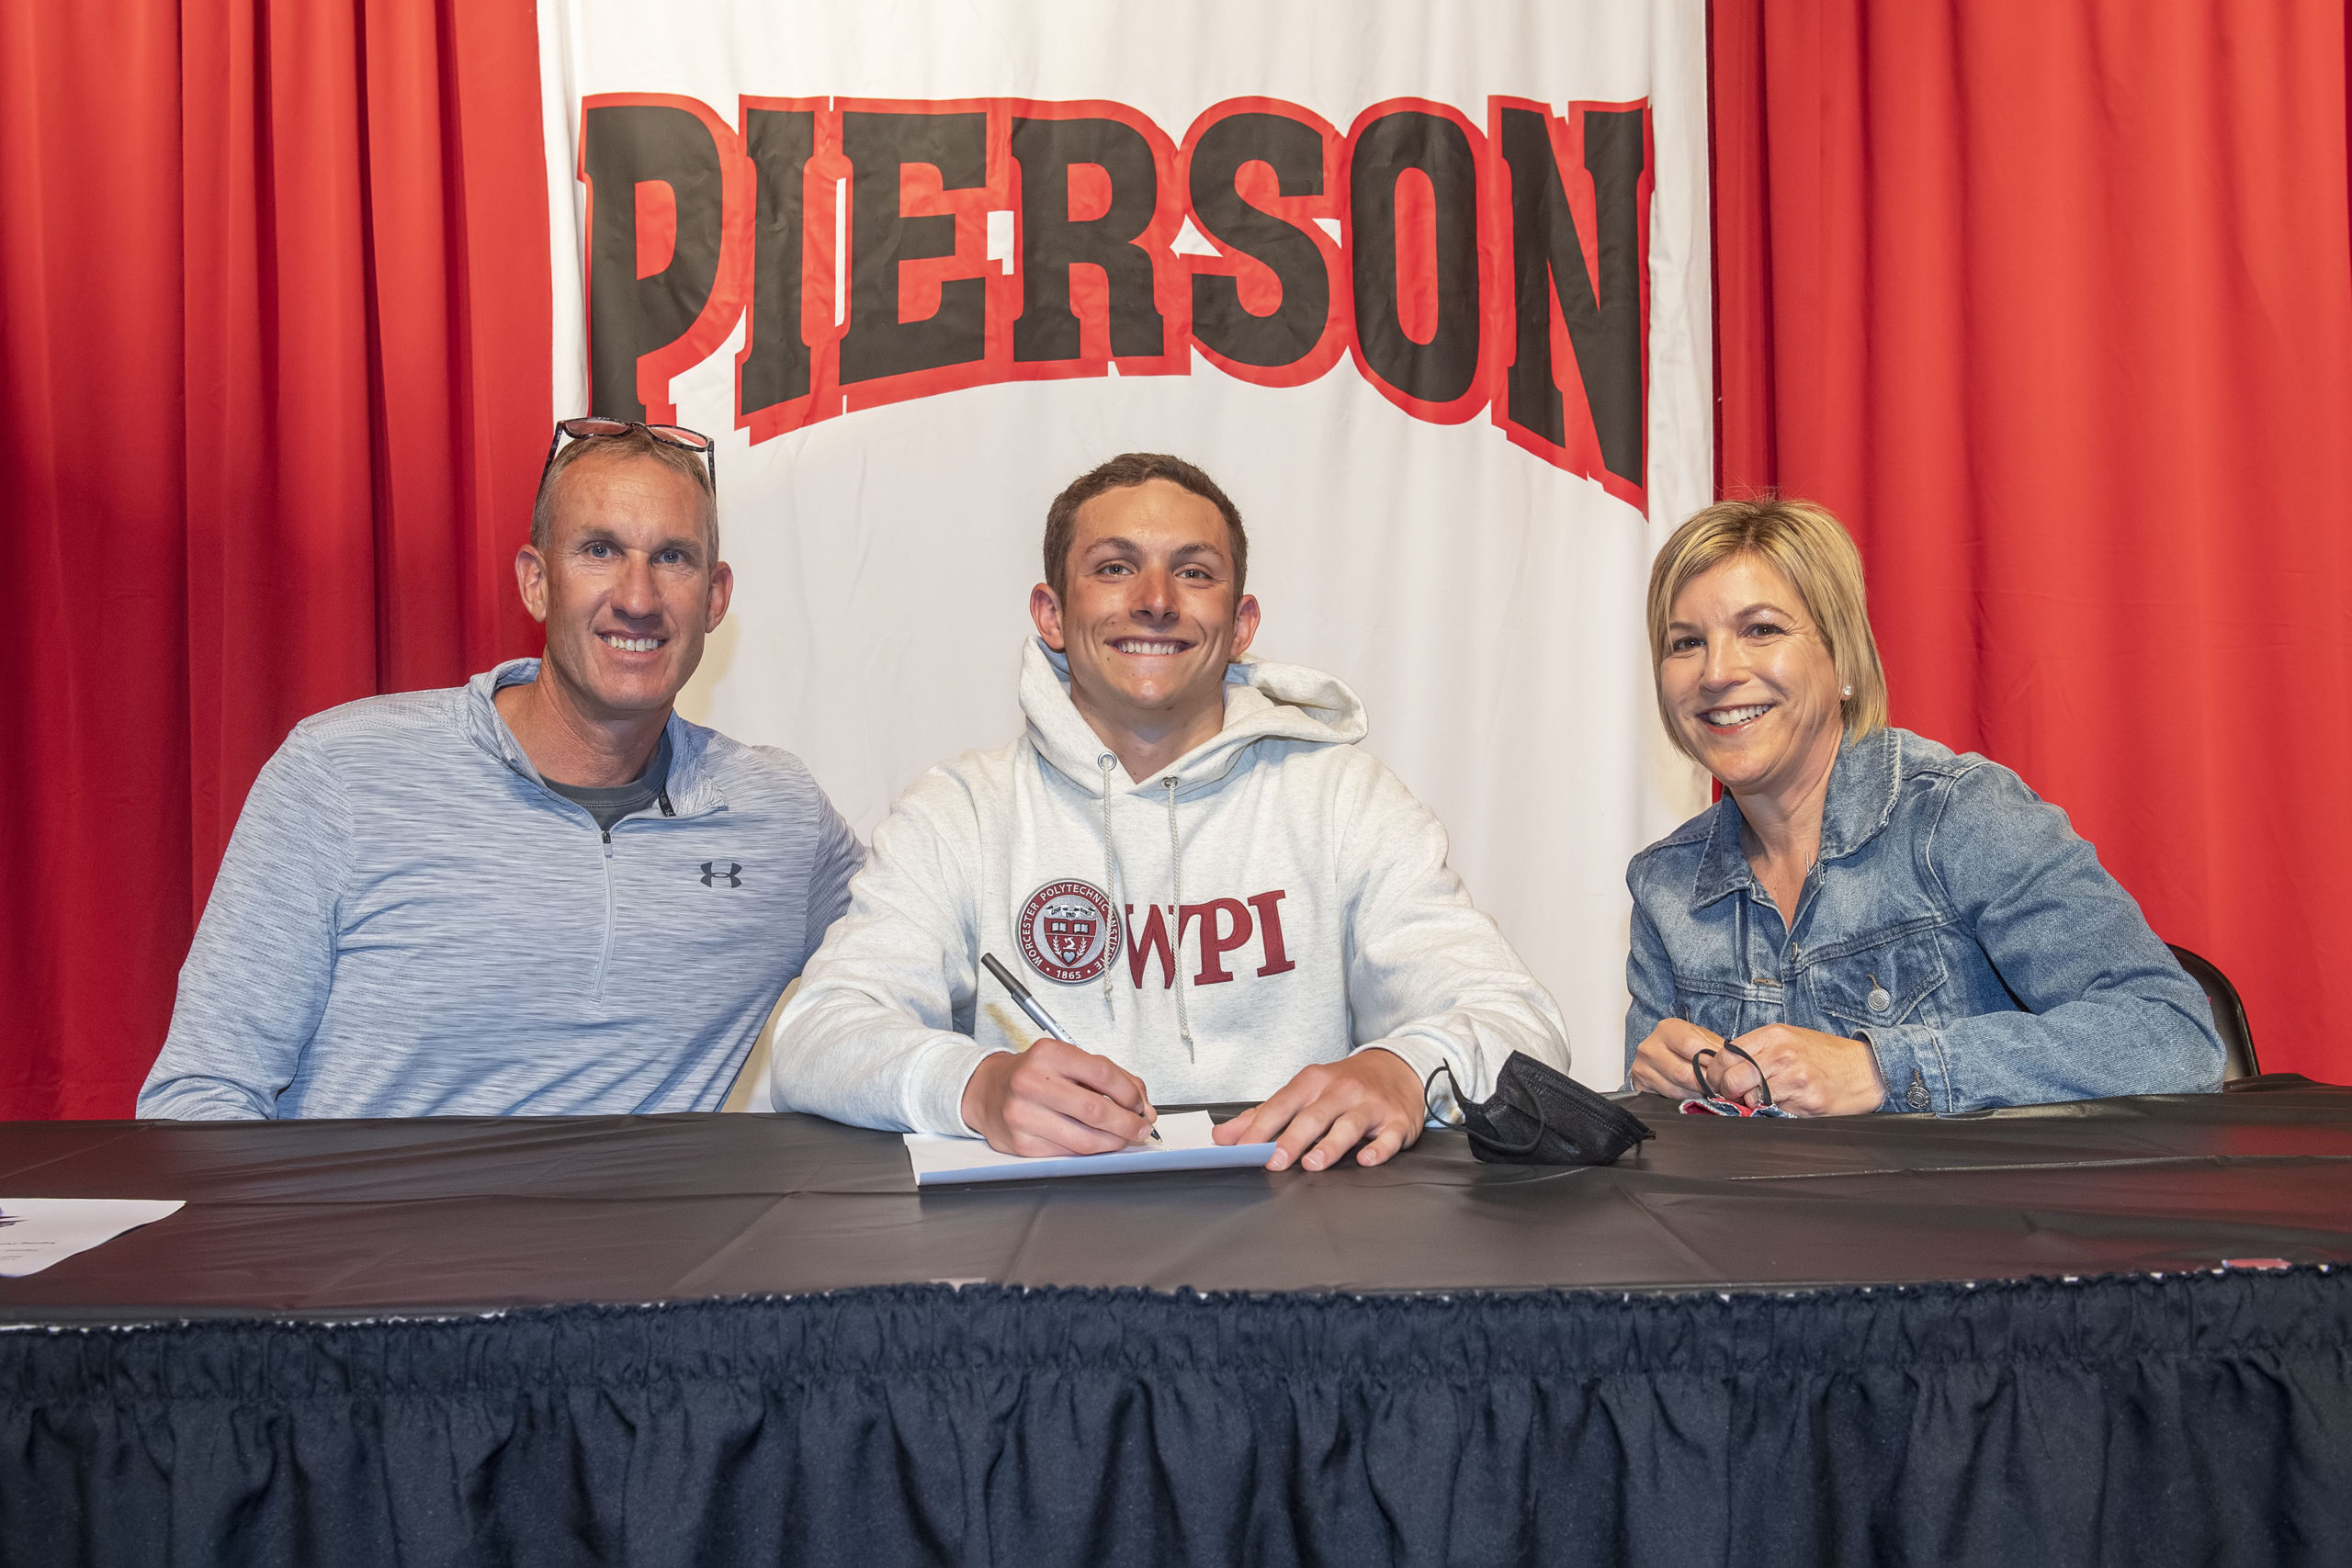 Pierson senior Jack Duryea, with his parents  Chris and Elise, signed his letter of intent to swim at Worcester Polytechnic Institute in early May.  MICHAEL HELLER